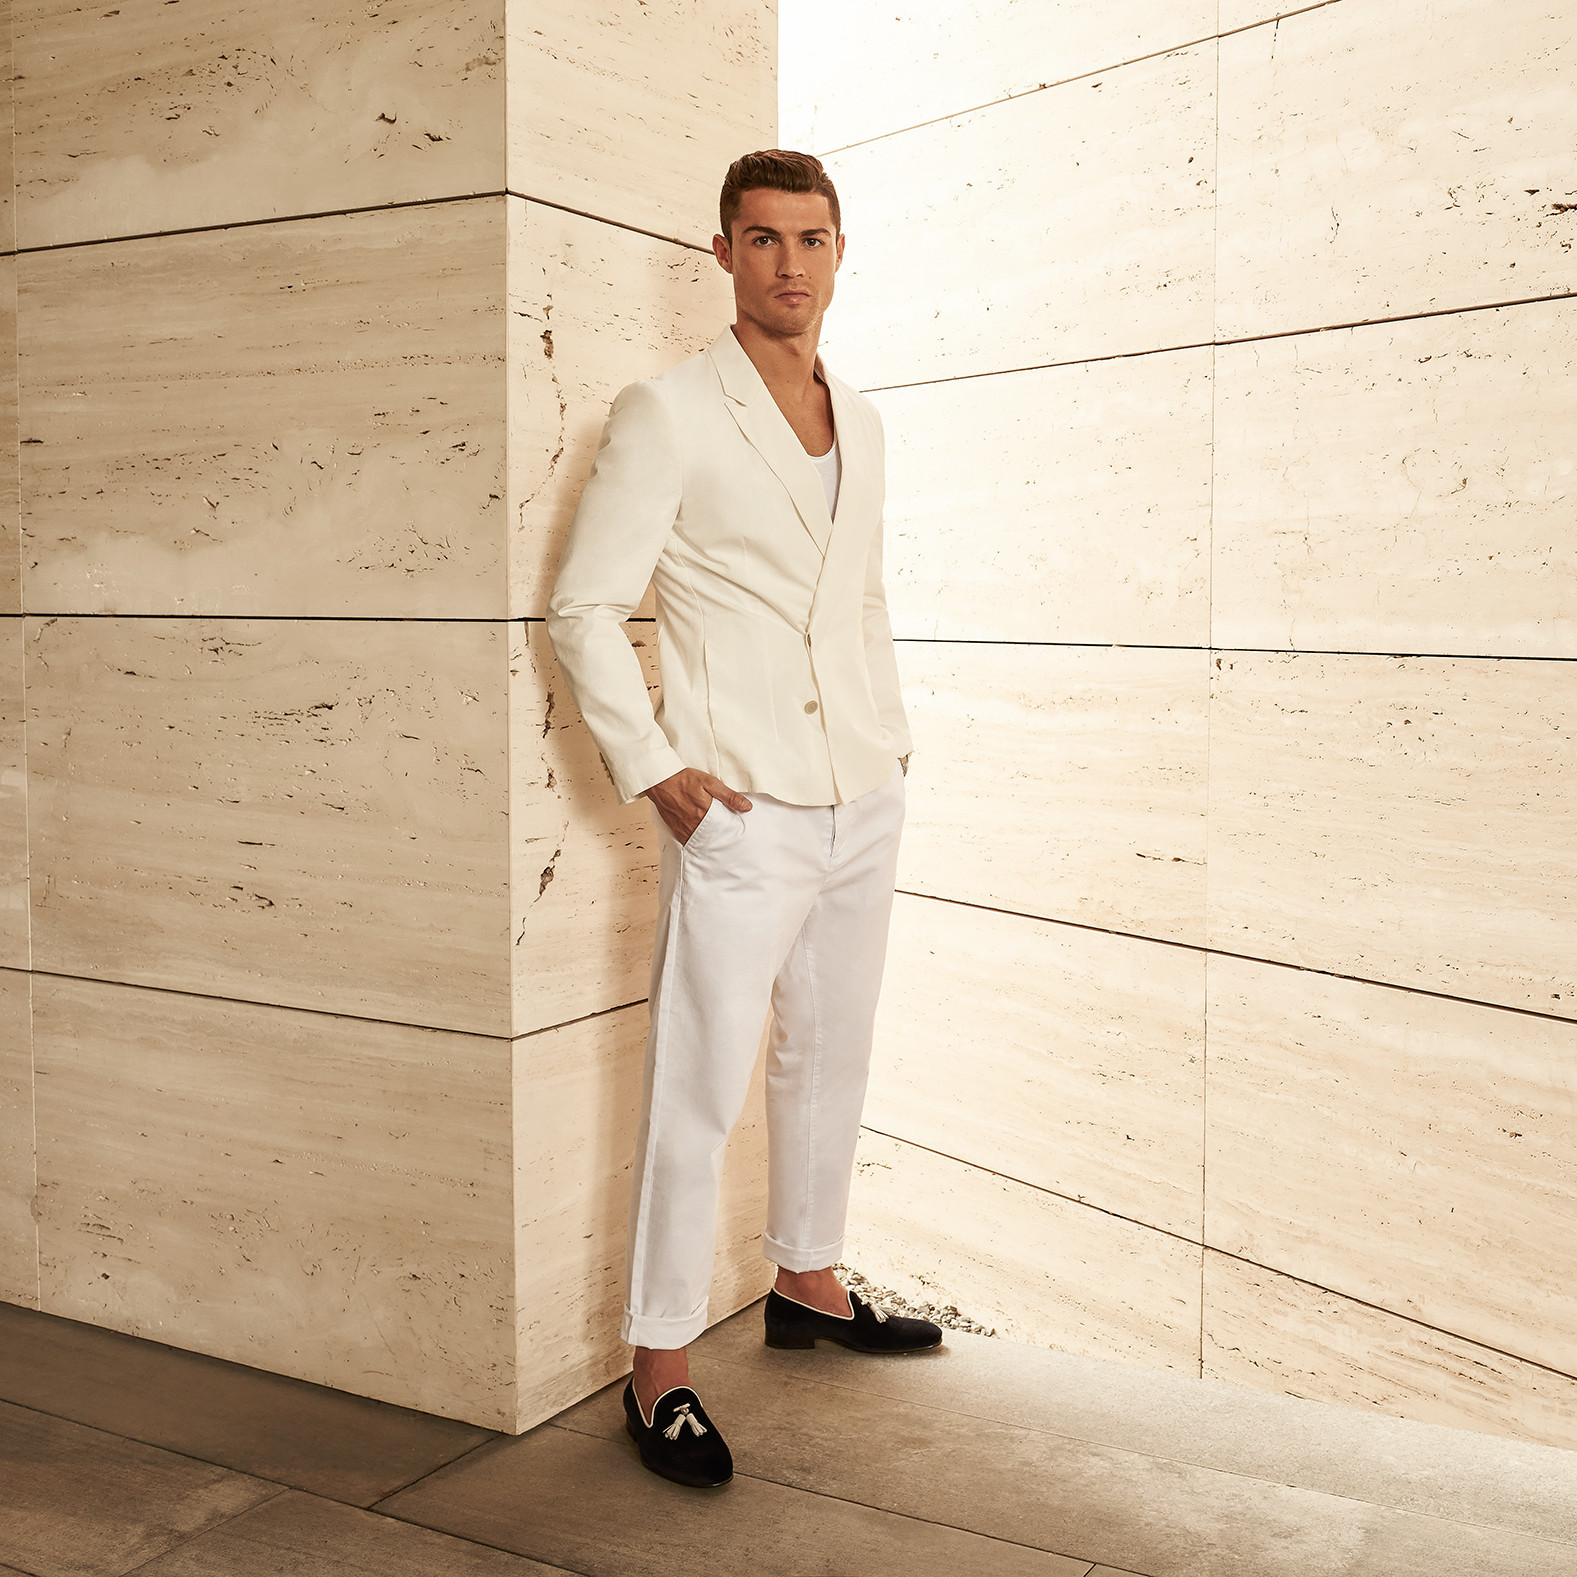 Get The Look: Cristiano Ronaldo Stays Winning In All-White Suiting